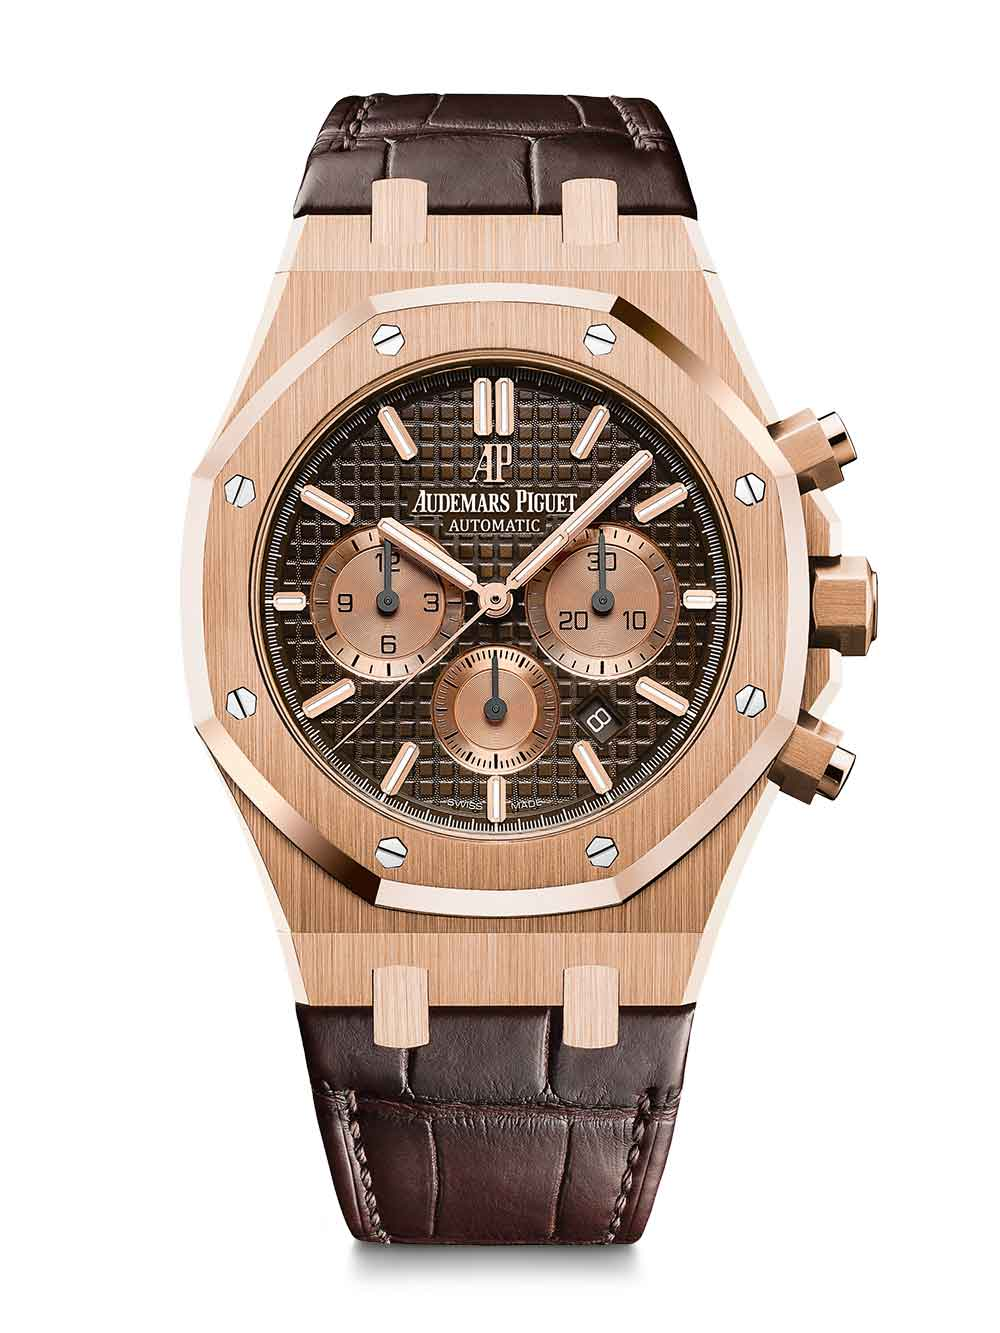 Royal Oak Chronograph, pink gold, brown dial, brown alligator strap, reference 26331OR.OO.D821CR.01